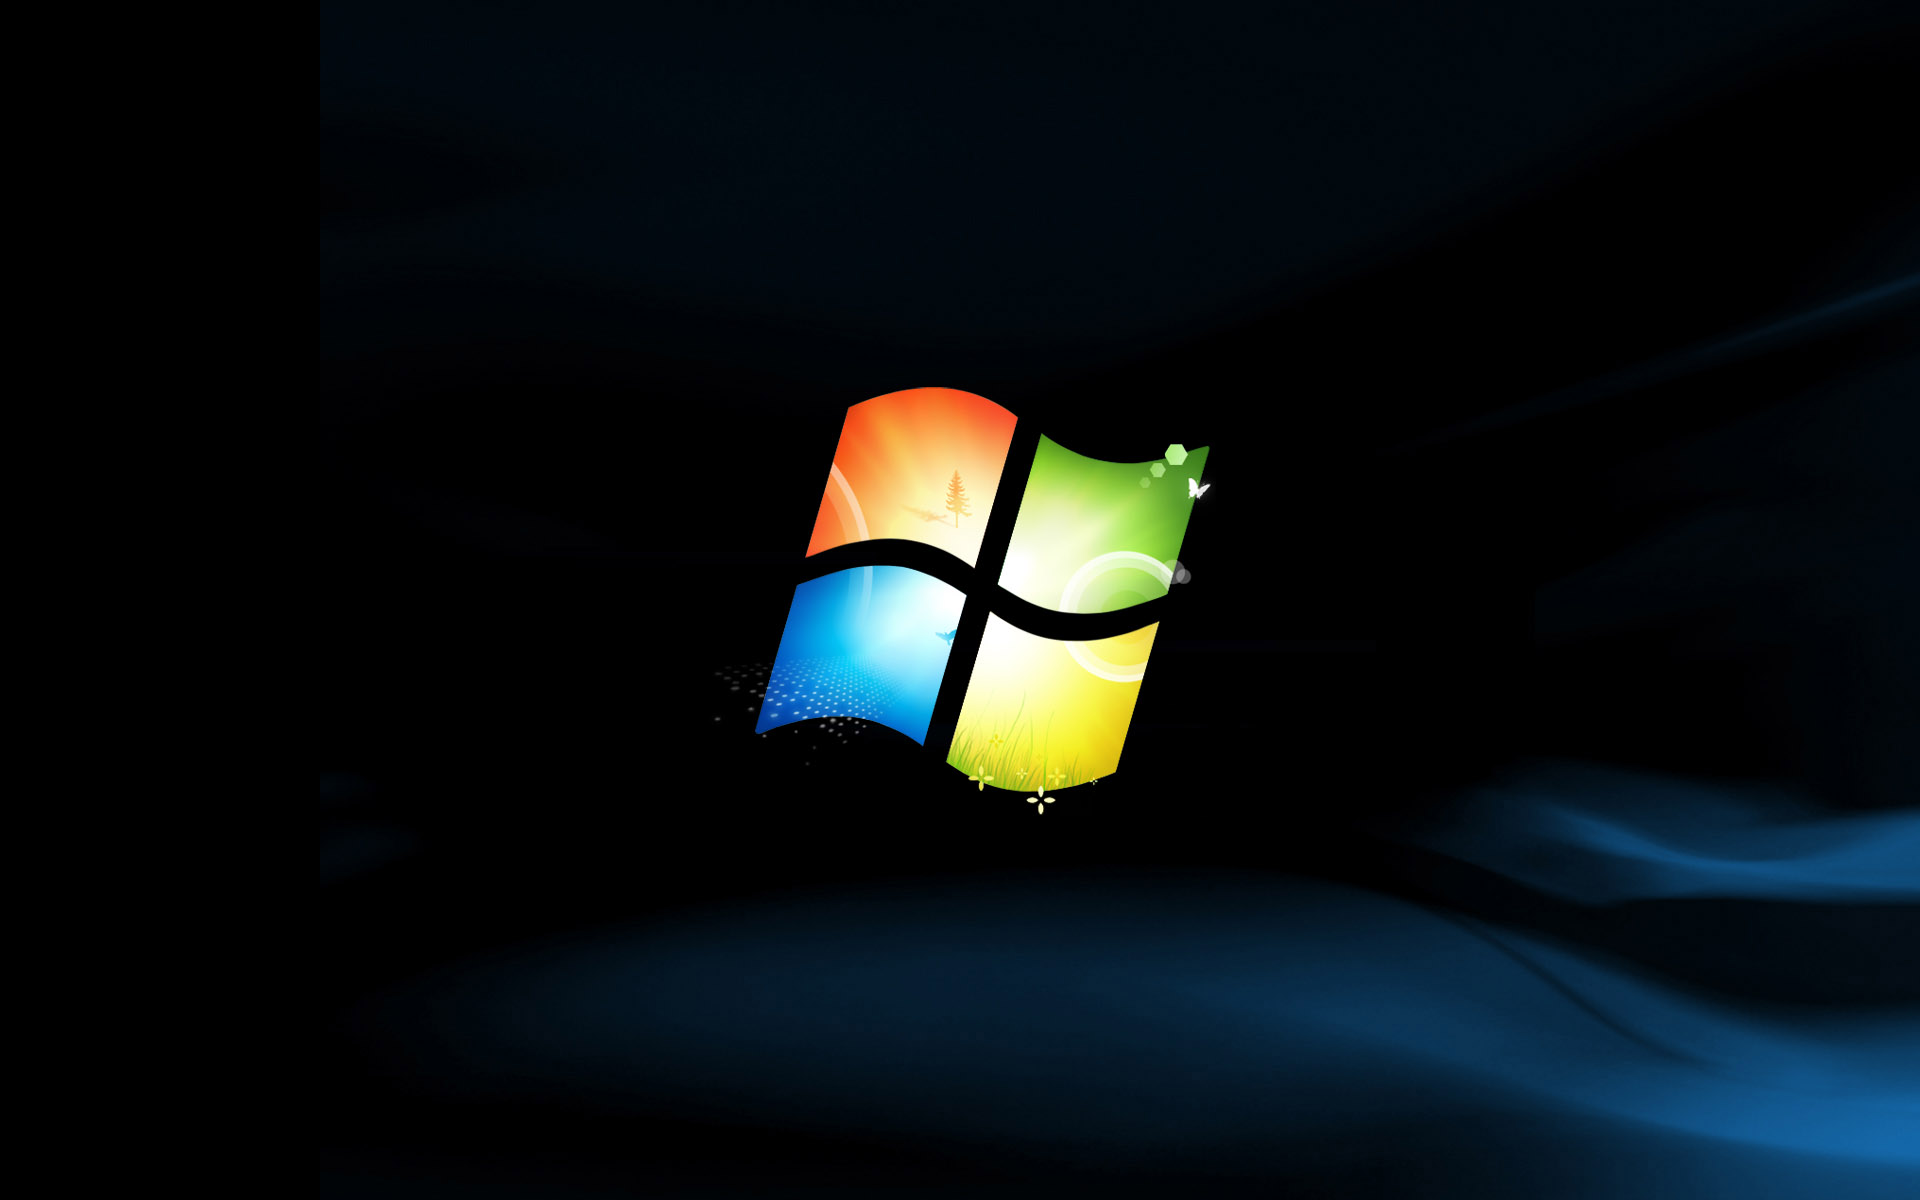 Windows Desktop Wallpaper 14733